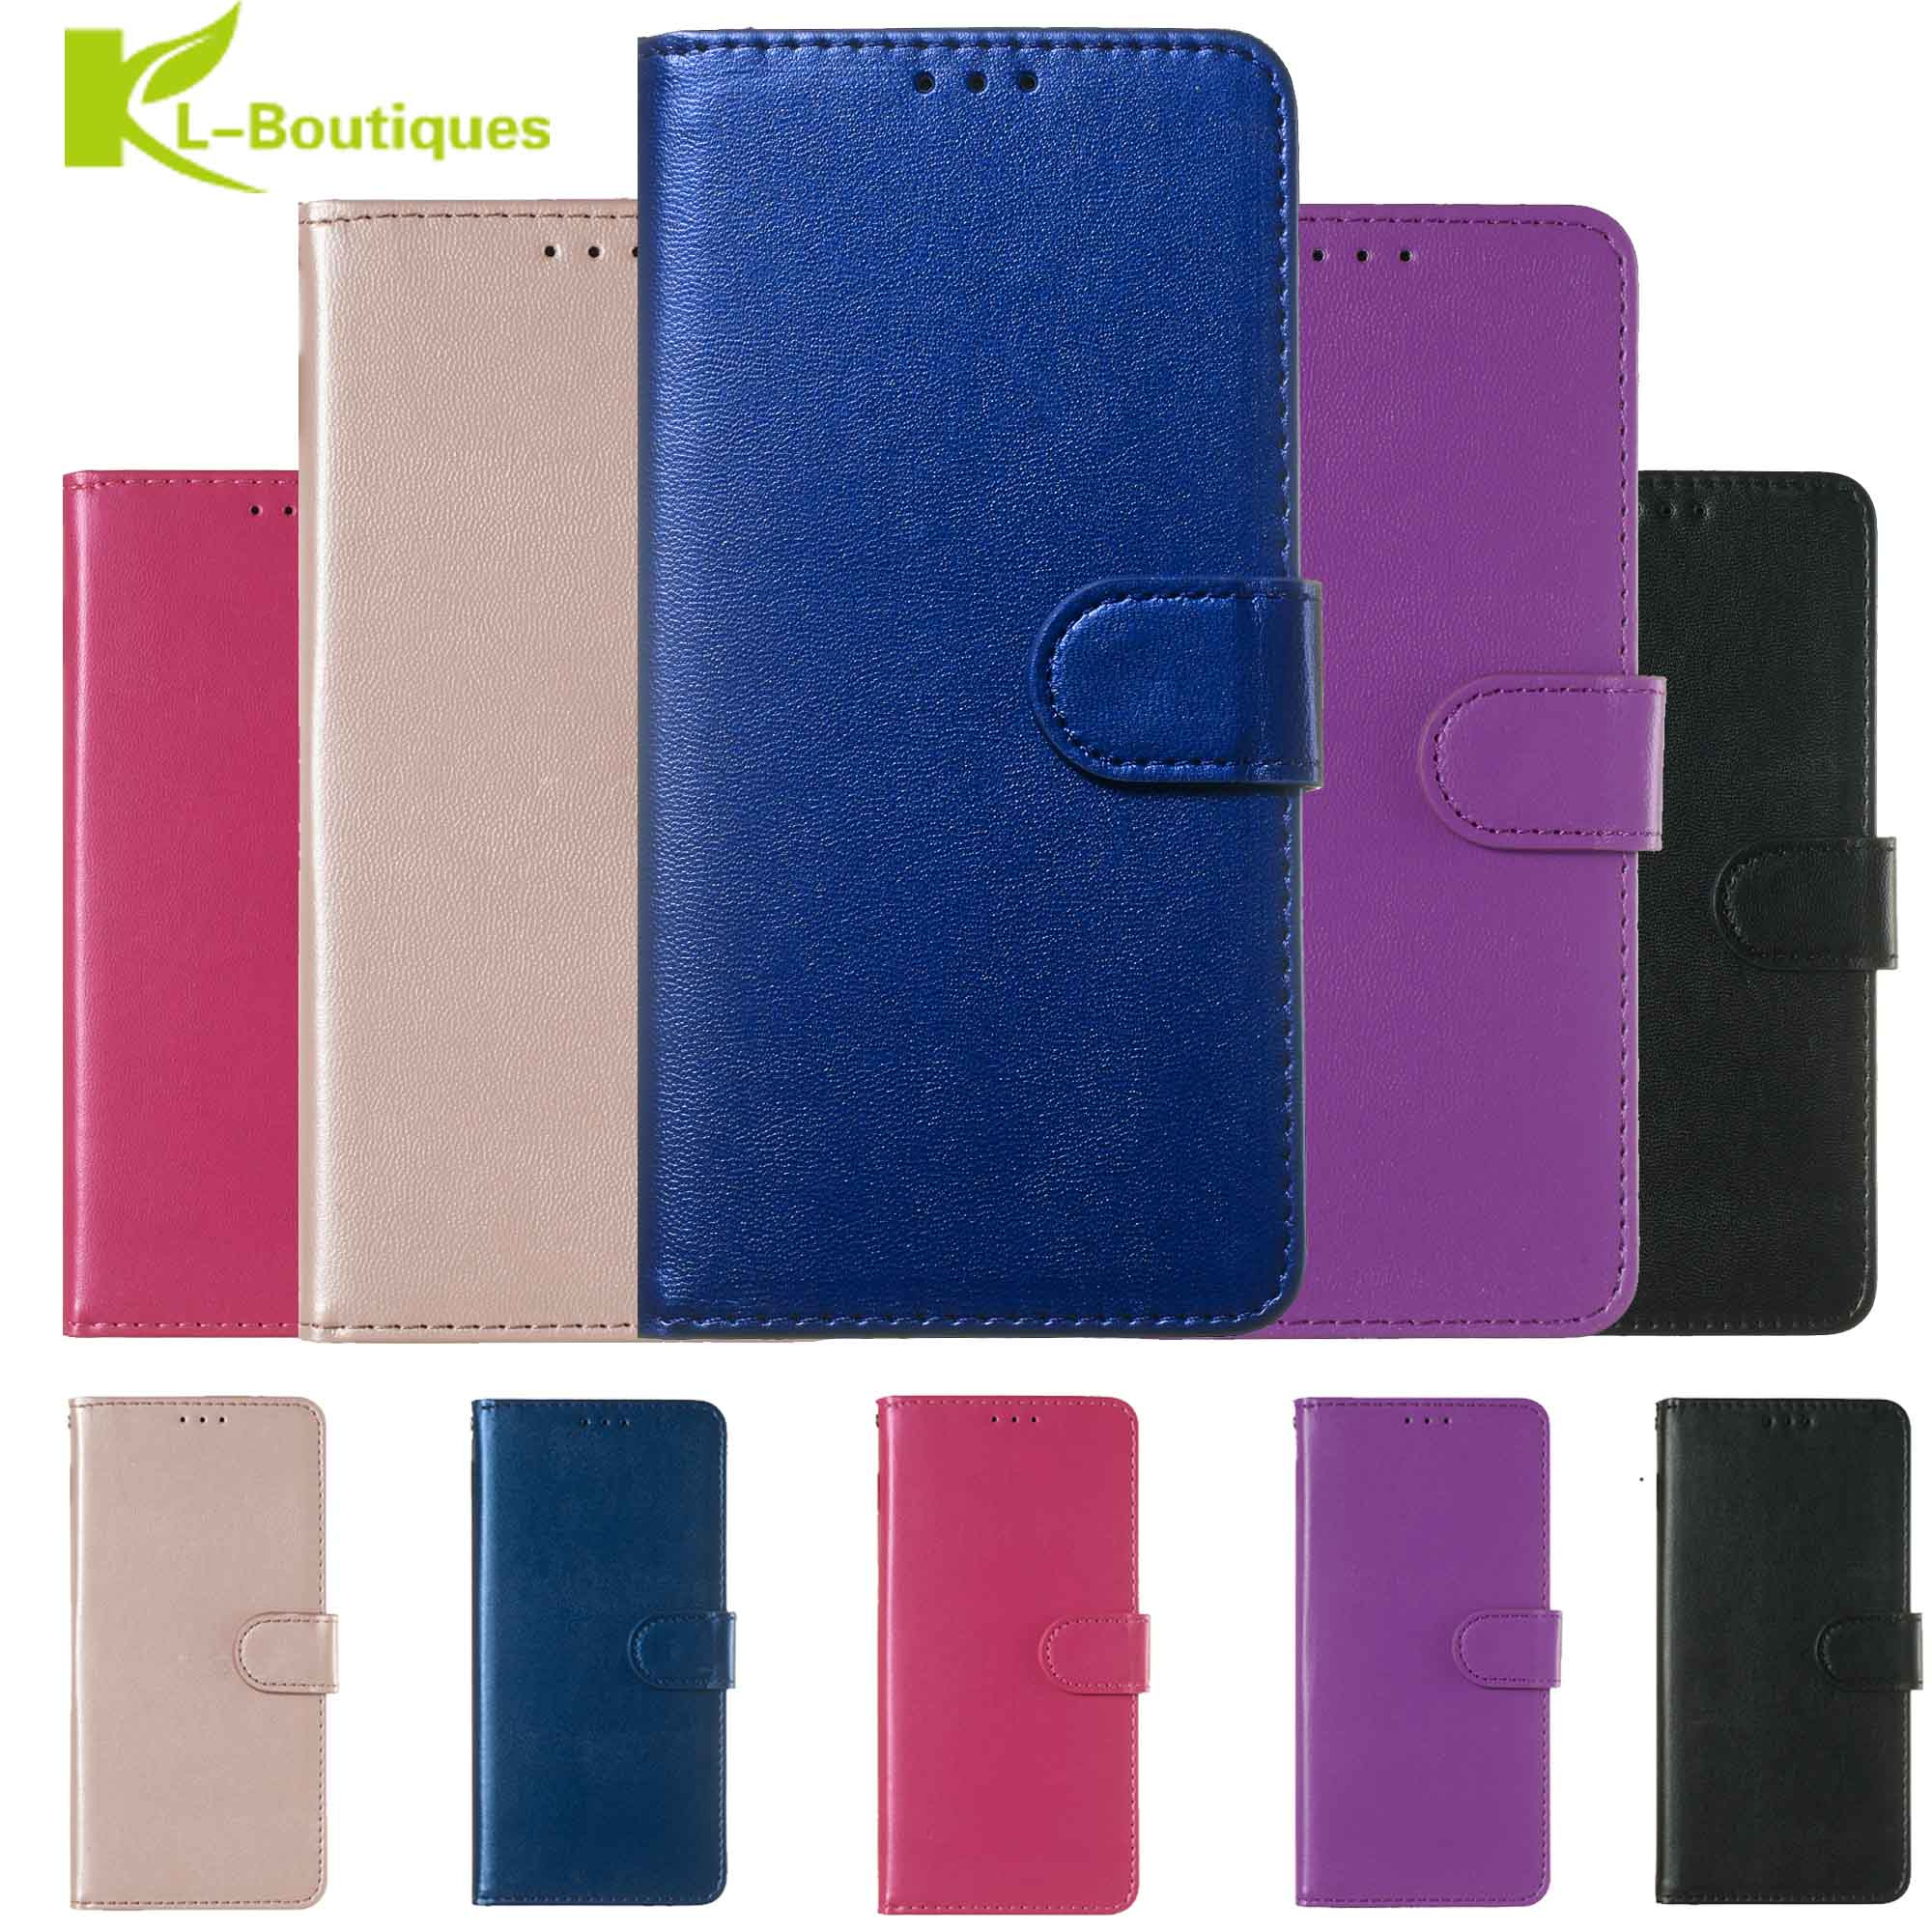 <font><b>2019</b></font> Leather Case for <font><b>Nokia</b></font> <font><b>3.2</b></font> Cover capa TA-1154 TA-1156 TA-1159 Phone case coque FOR NOKIA3.2 <font><b>nokia</b></font> <font><b>3.2</b></font> <font><b>2019</b></font> TA-1164 Case Bag image